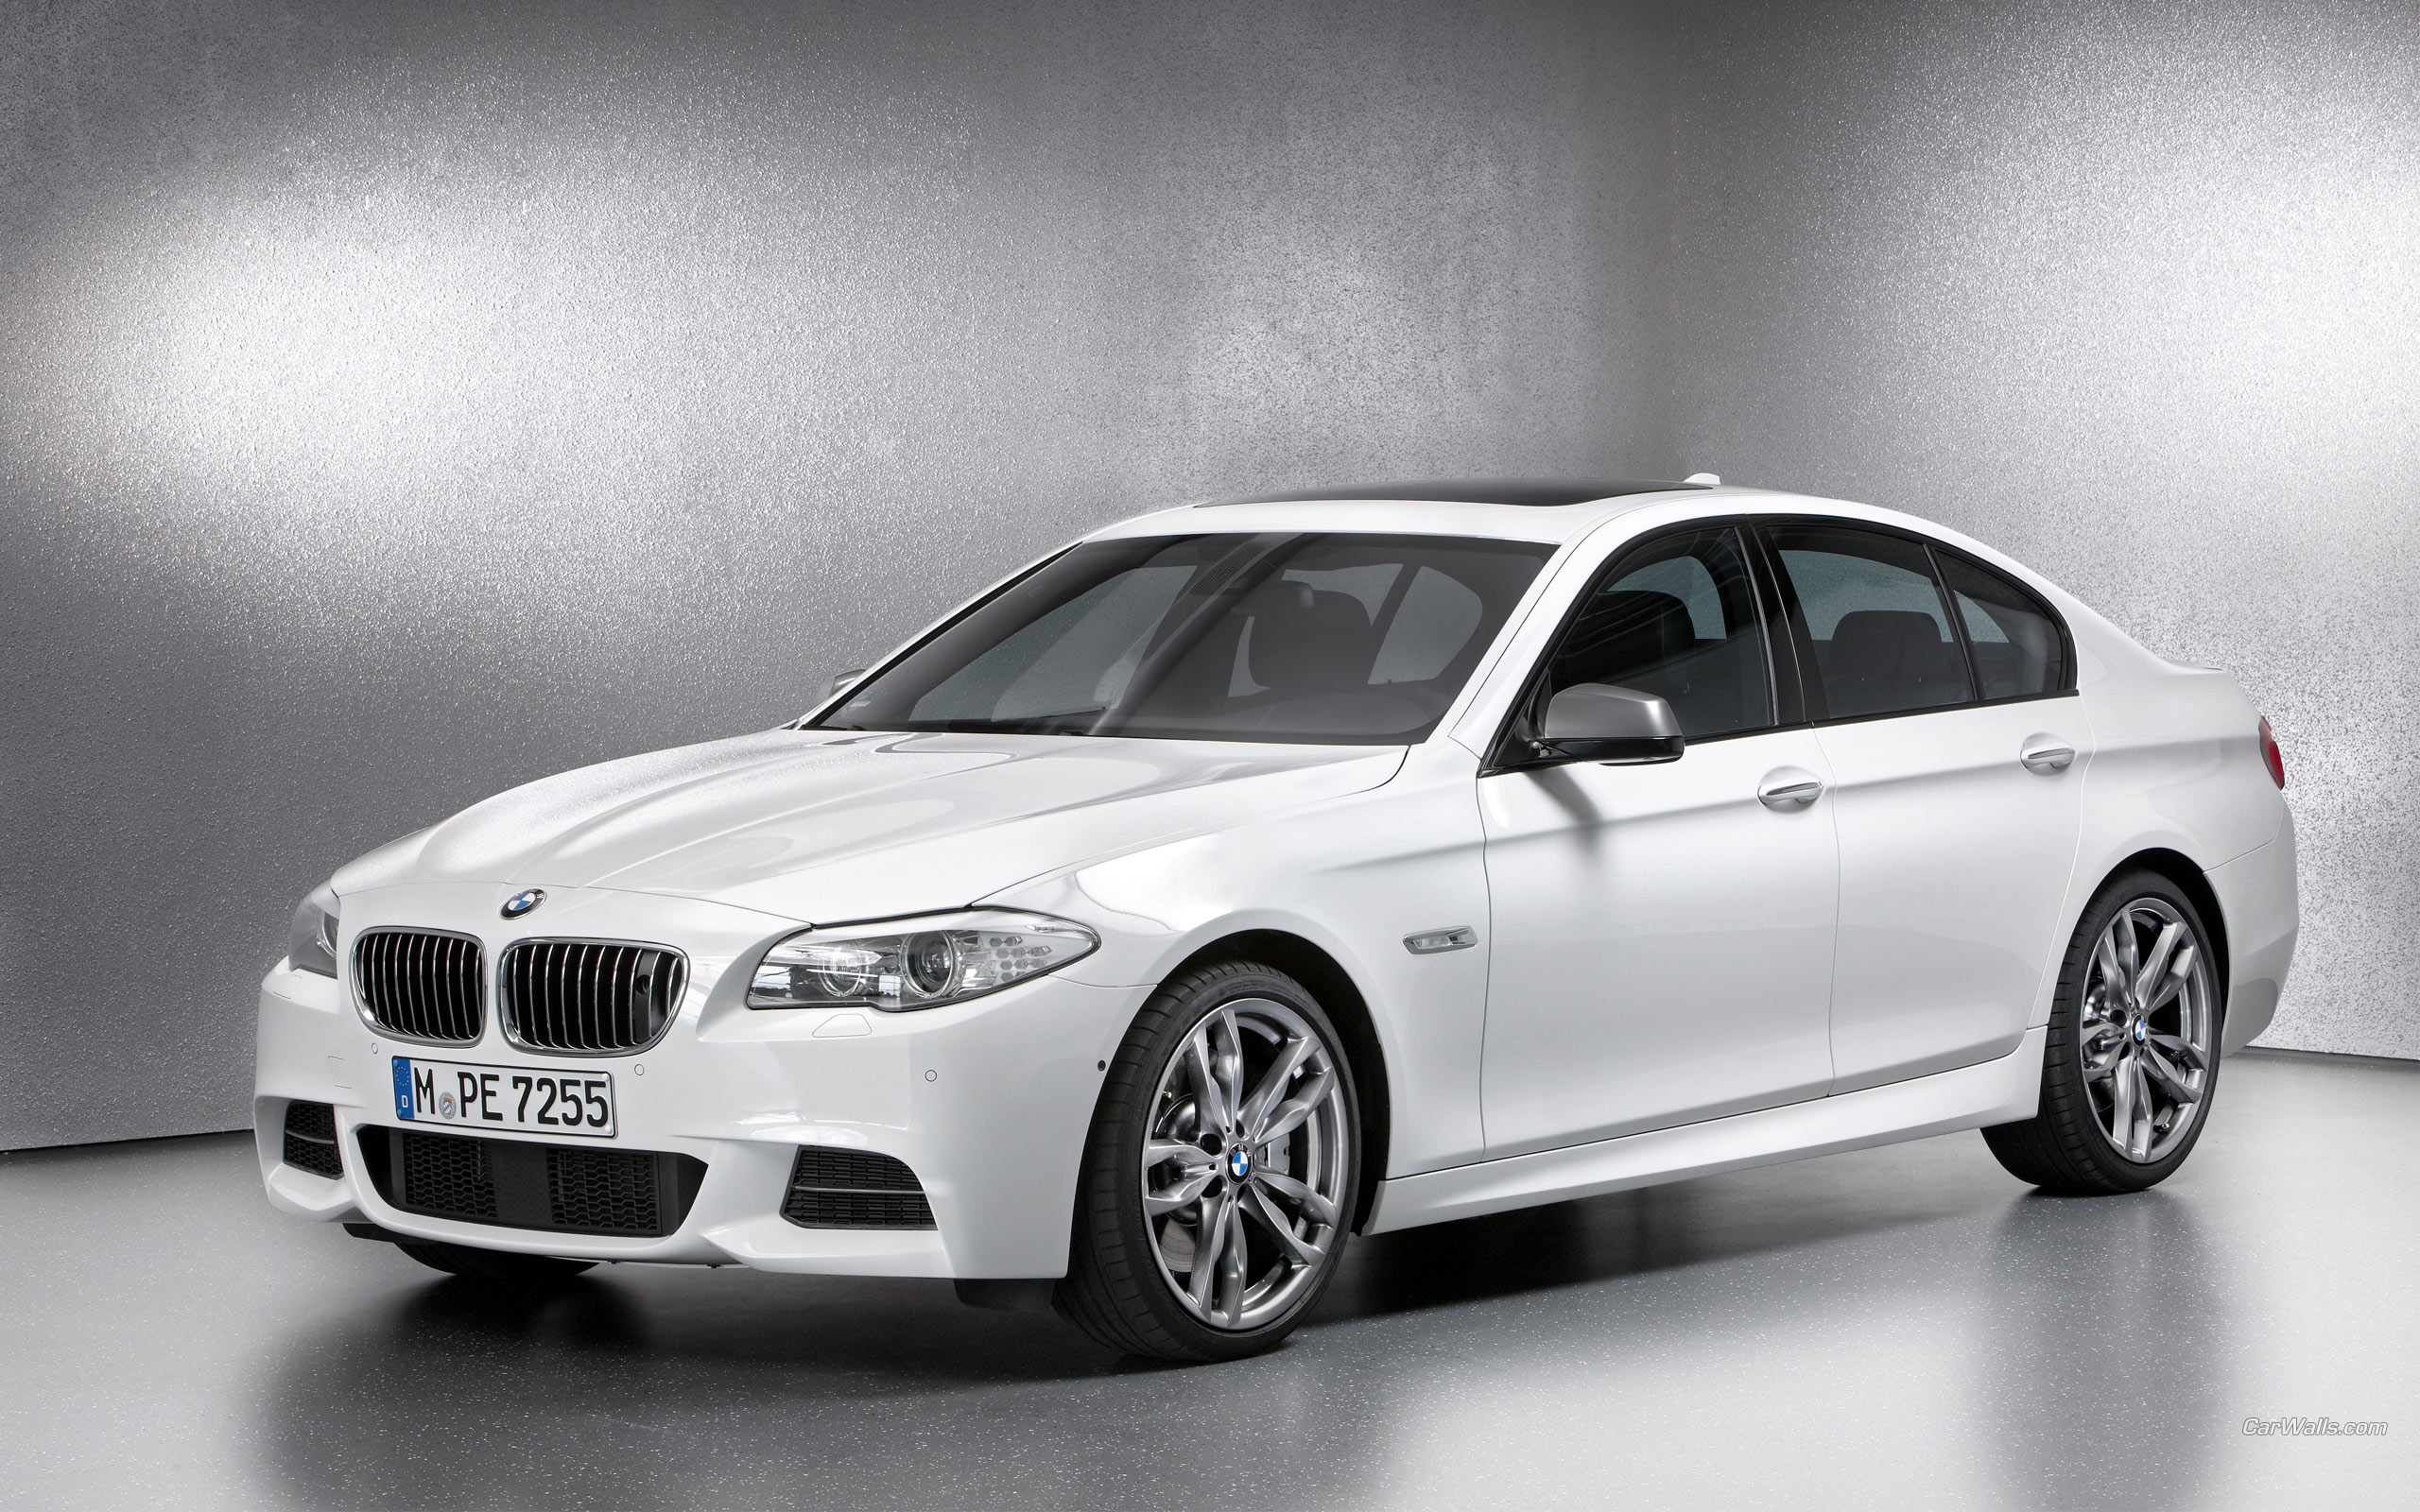 Wallpaper Bmw Cars 2560x1600